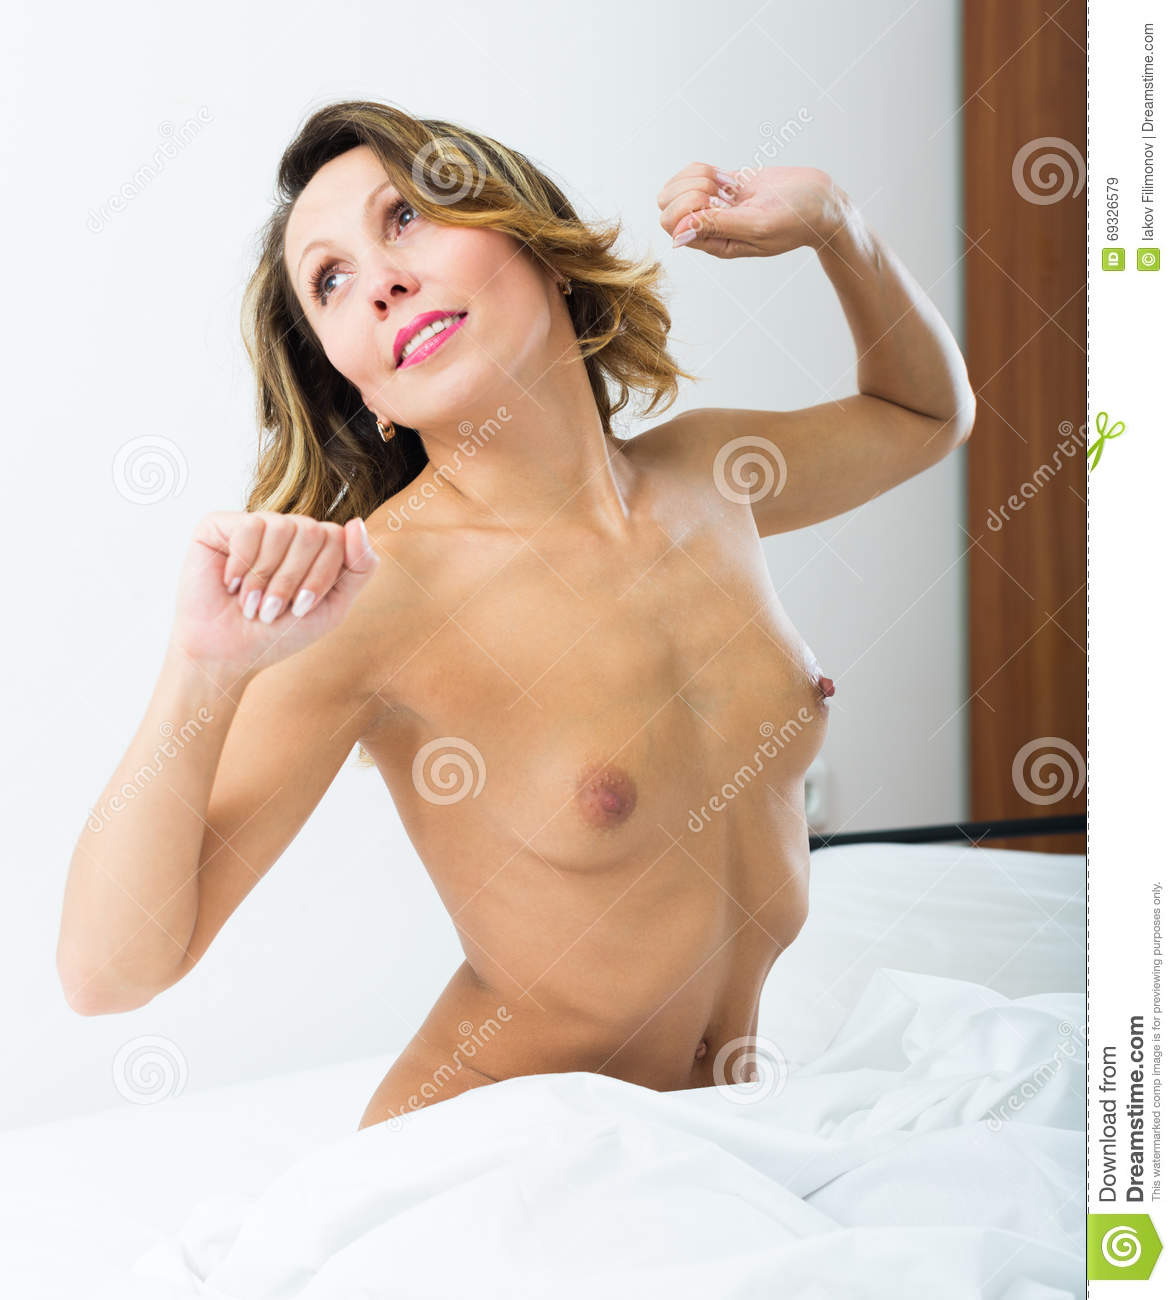 Nude middle aged woman